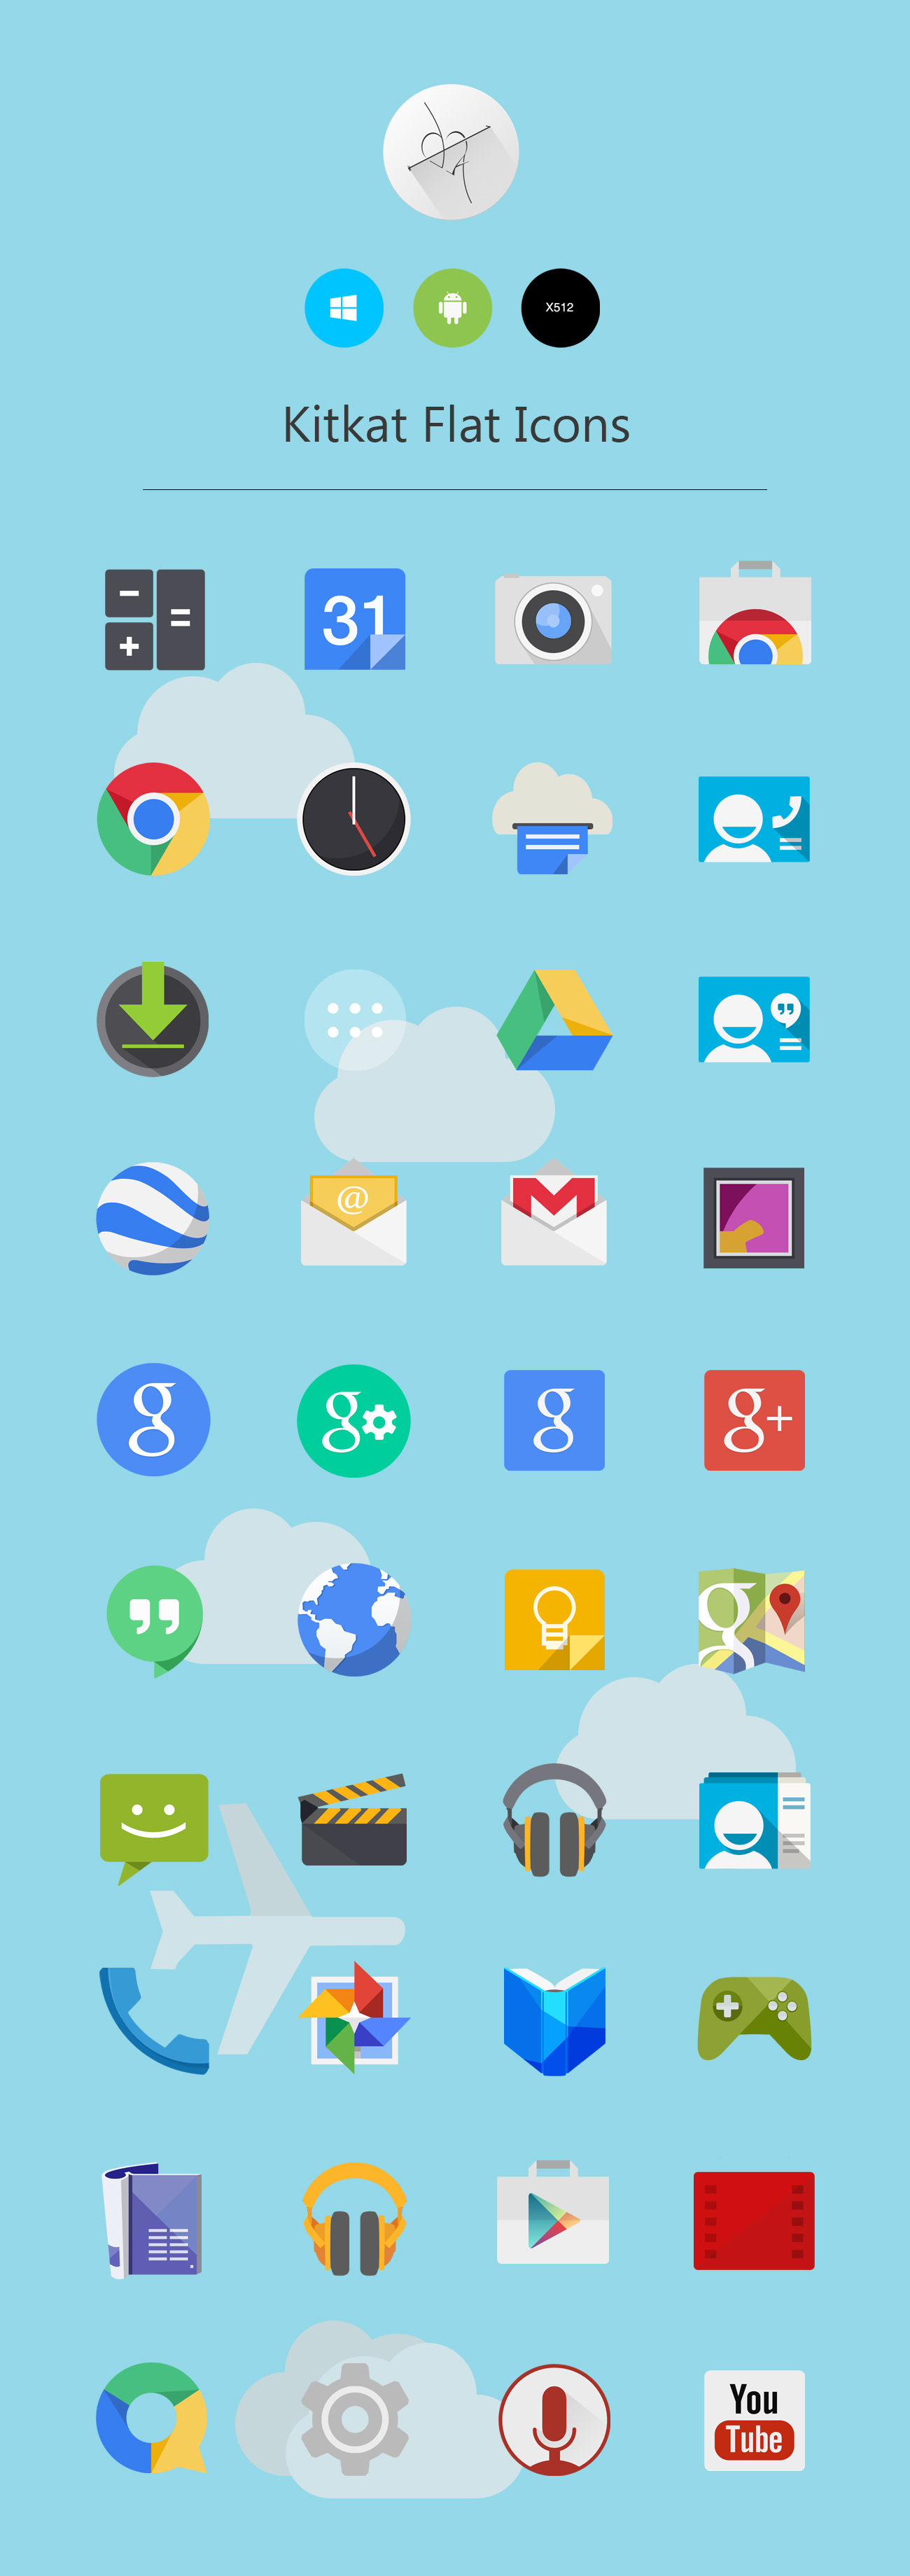 kit kat icon pack